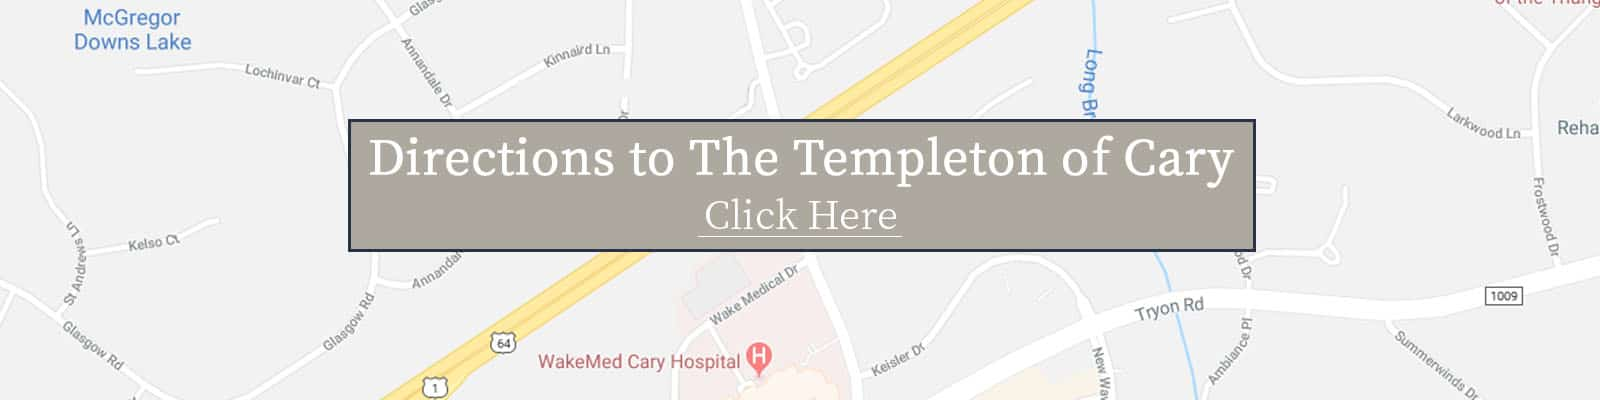 The Templeton of Cary map